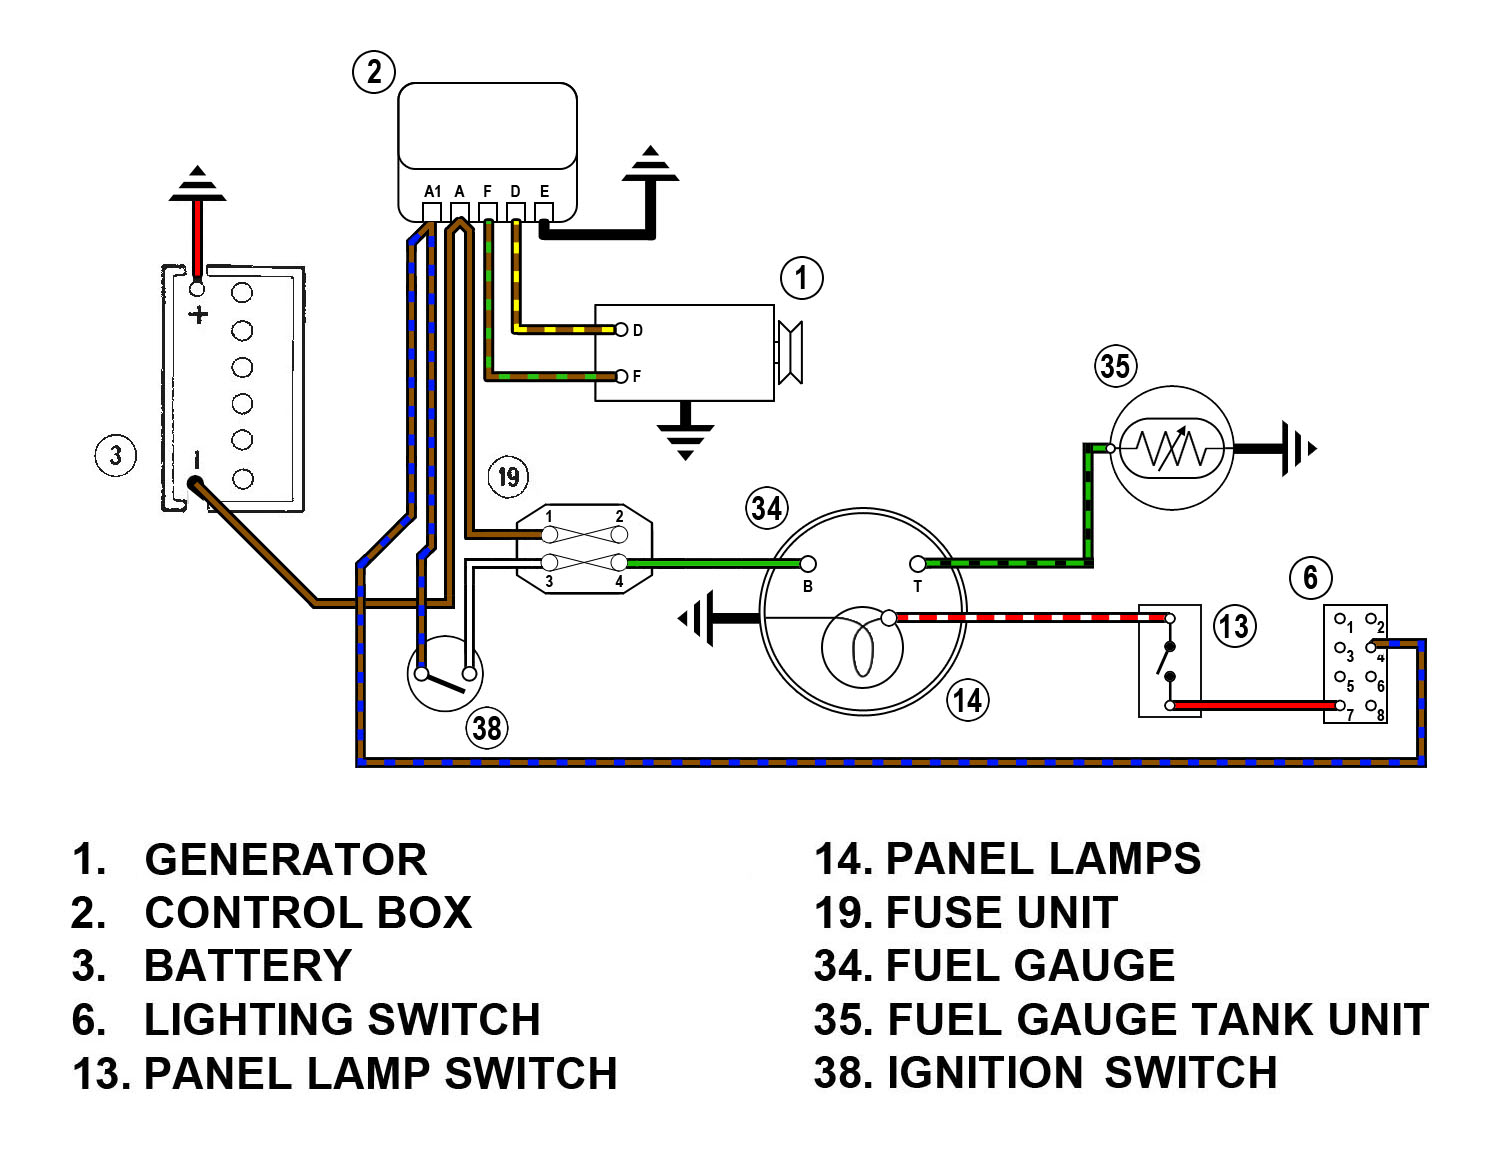 FuelGaugeWiringSpMkII_MGMkI spridgetguru com tech index fuel gauge wiring diagram teleflex fuel gauge wiring diagram at gsmportal.co